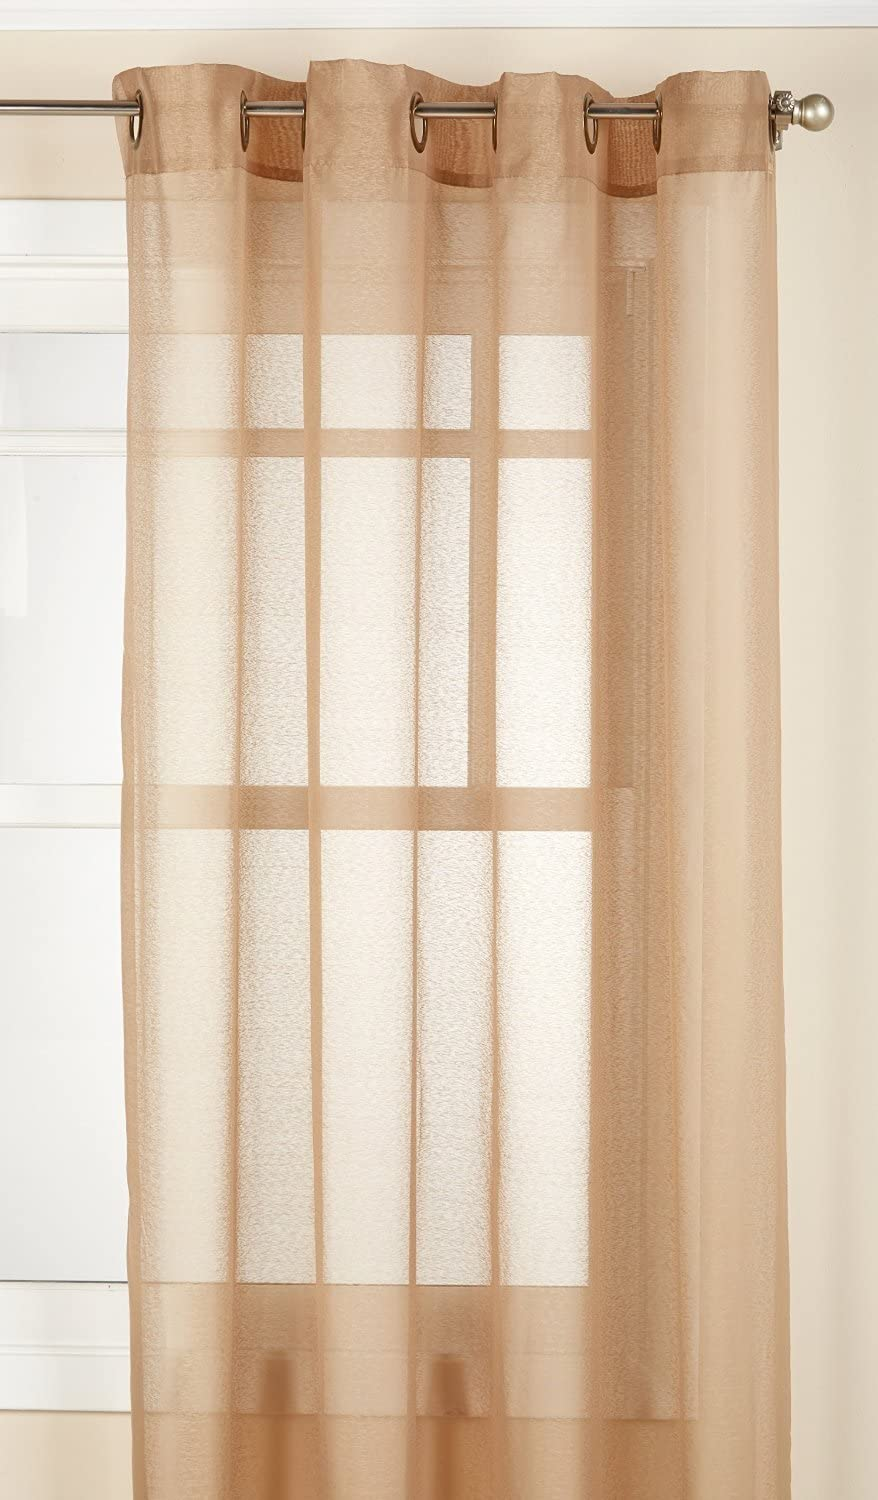 LORRAINE HOME FASHIONS Reverie Window Curtain Panel, 60 x 95, Taupe